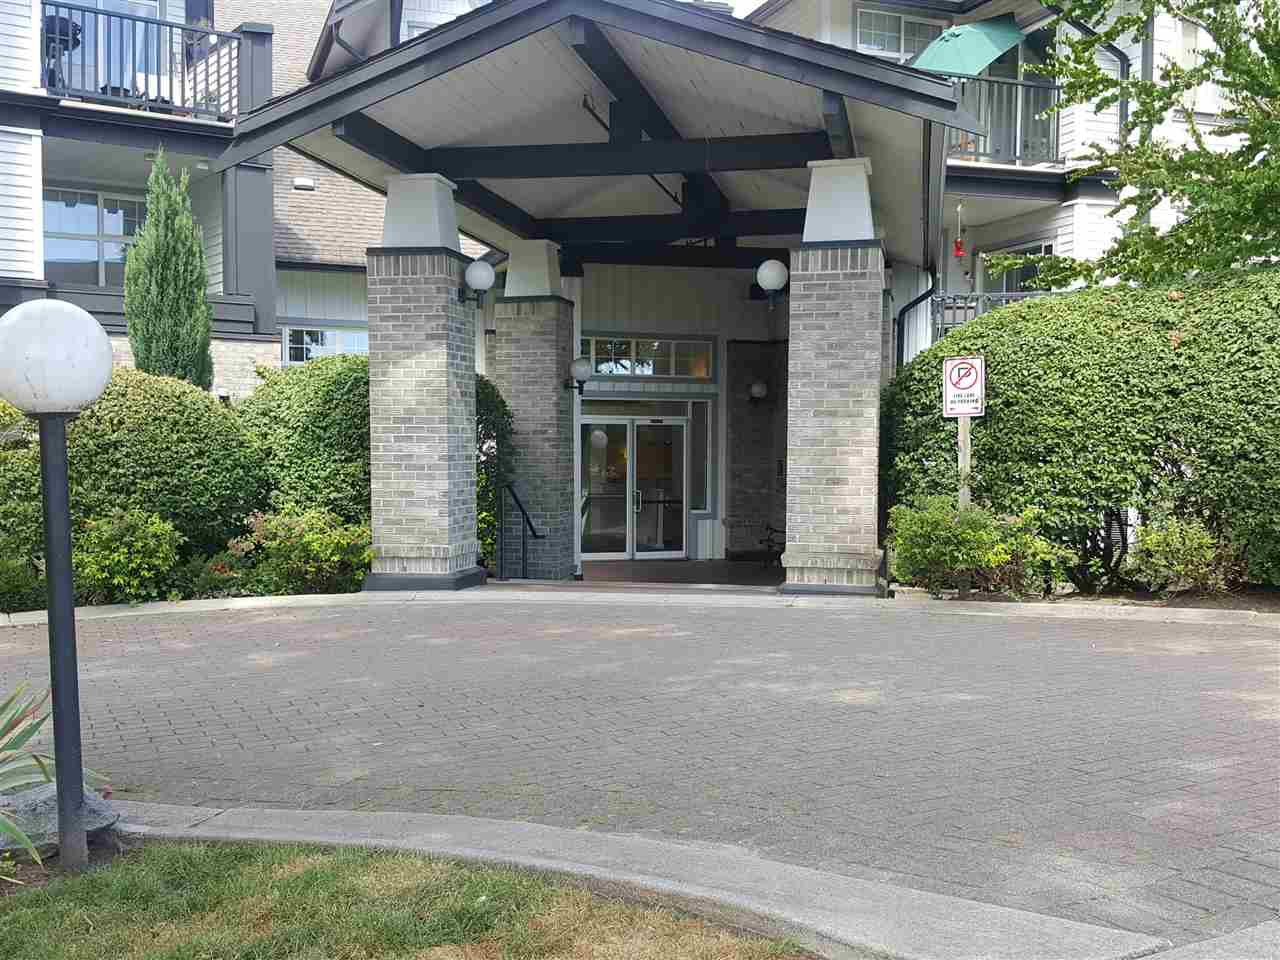 """Main Photo: 306 83 STAR Crescent in New Westminster: Queensborough Condo for sale in """"THE RESIDENCES BY THE RIVER"""" : MLS®# R2485408"""